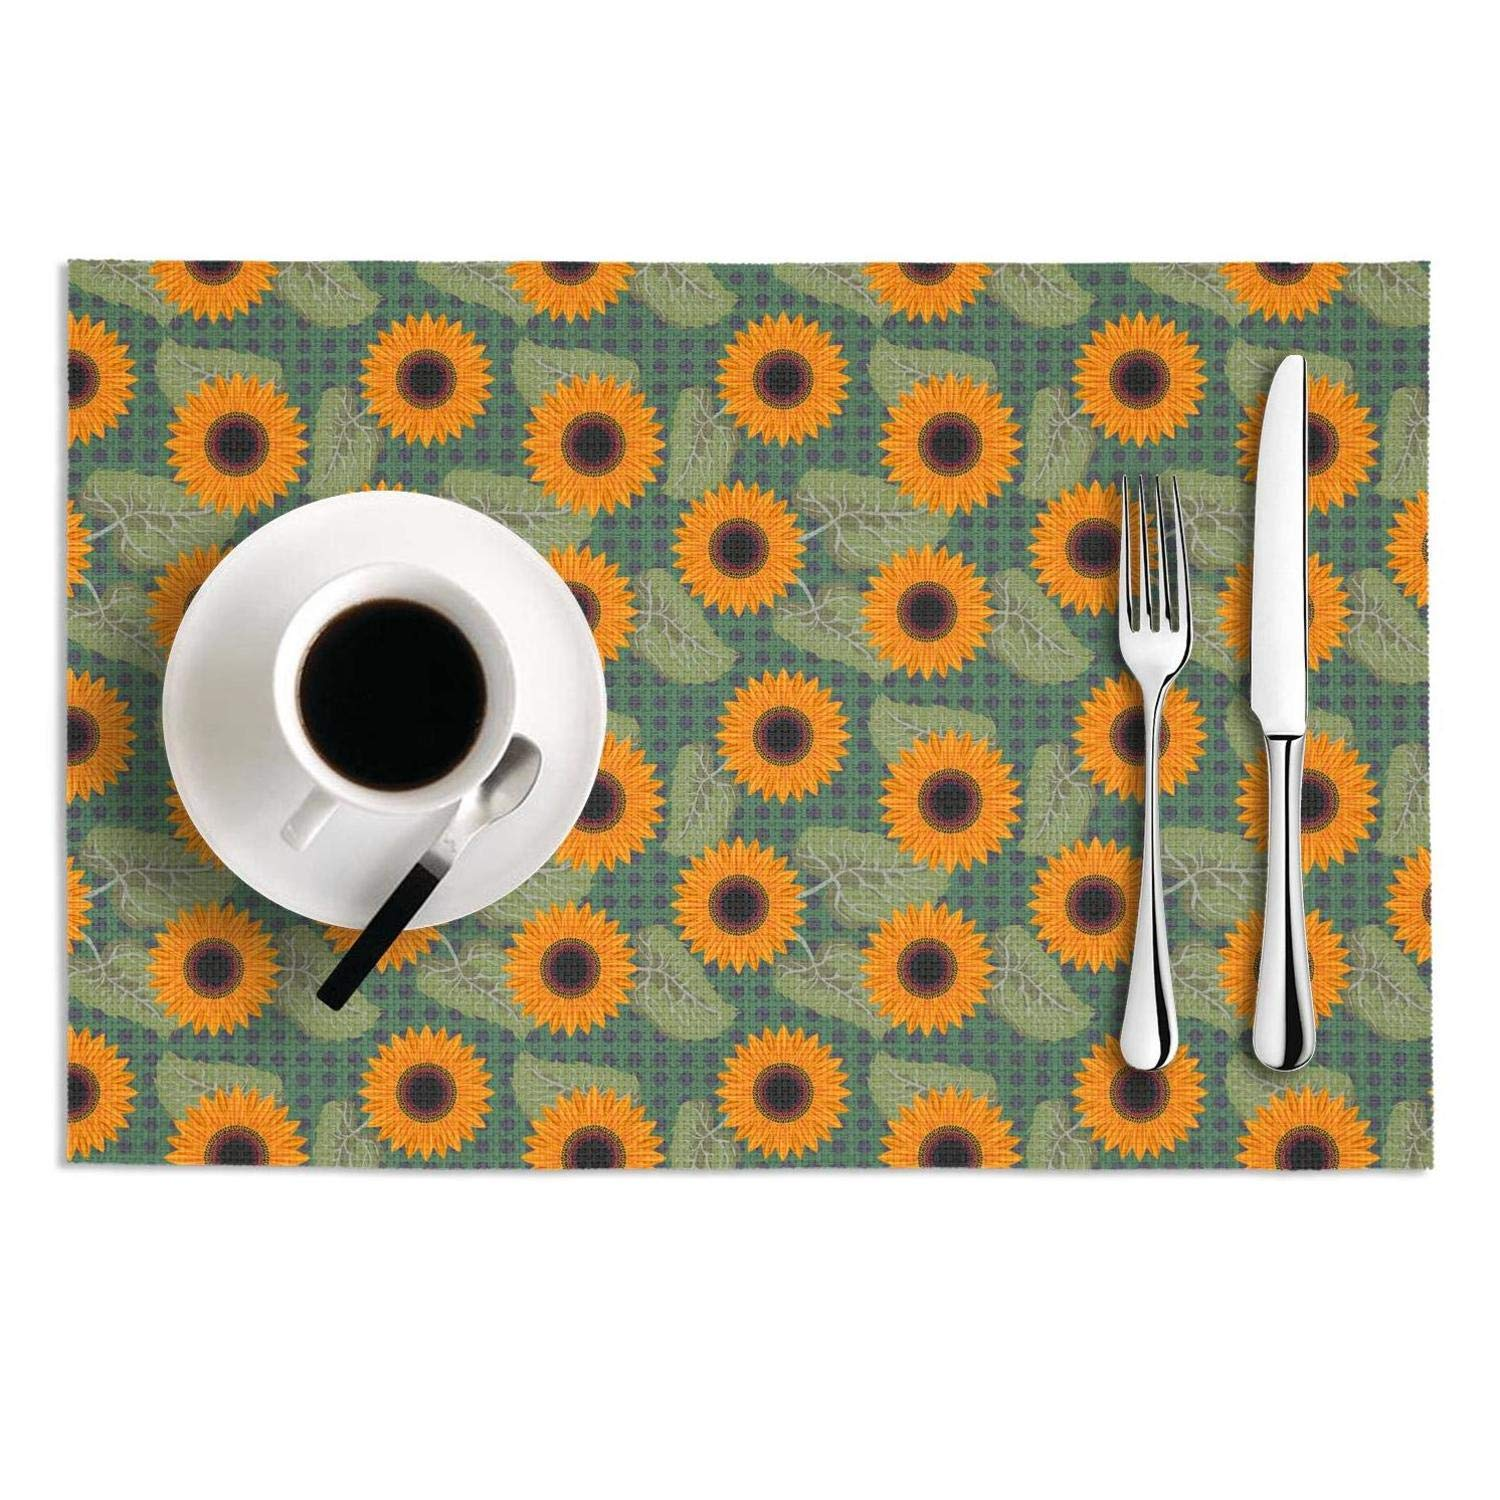 MAD DAFGA Graphic Sunflowers Near me PVC-Set of 2 Heat-Resistant Table Mats Coffee Dining Table Mats